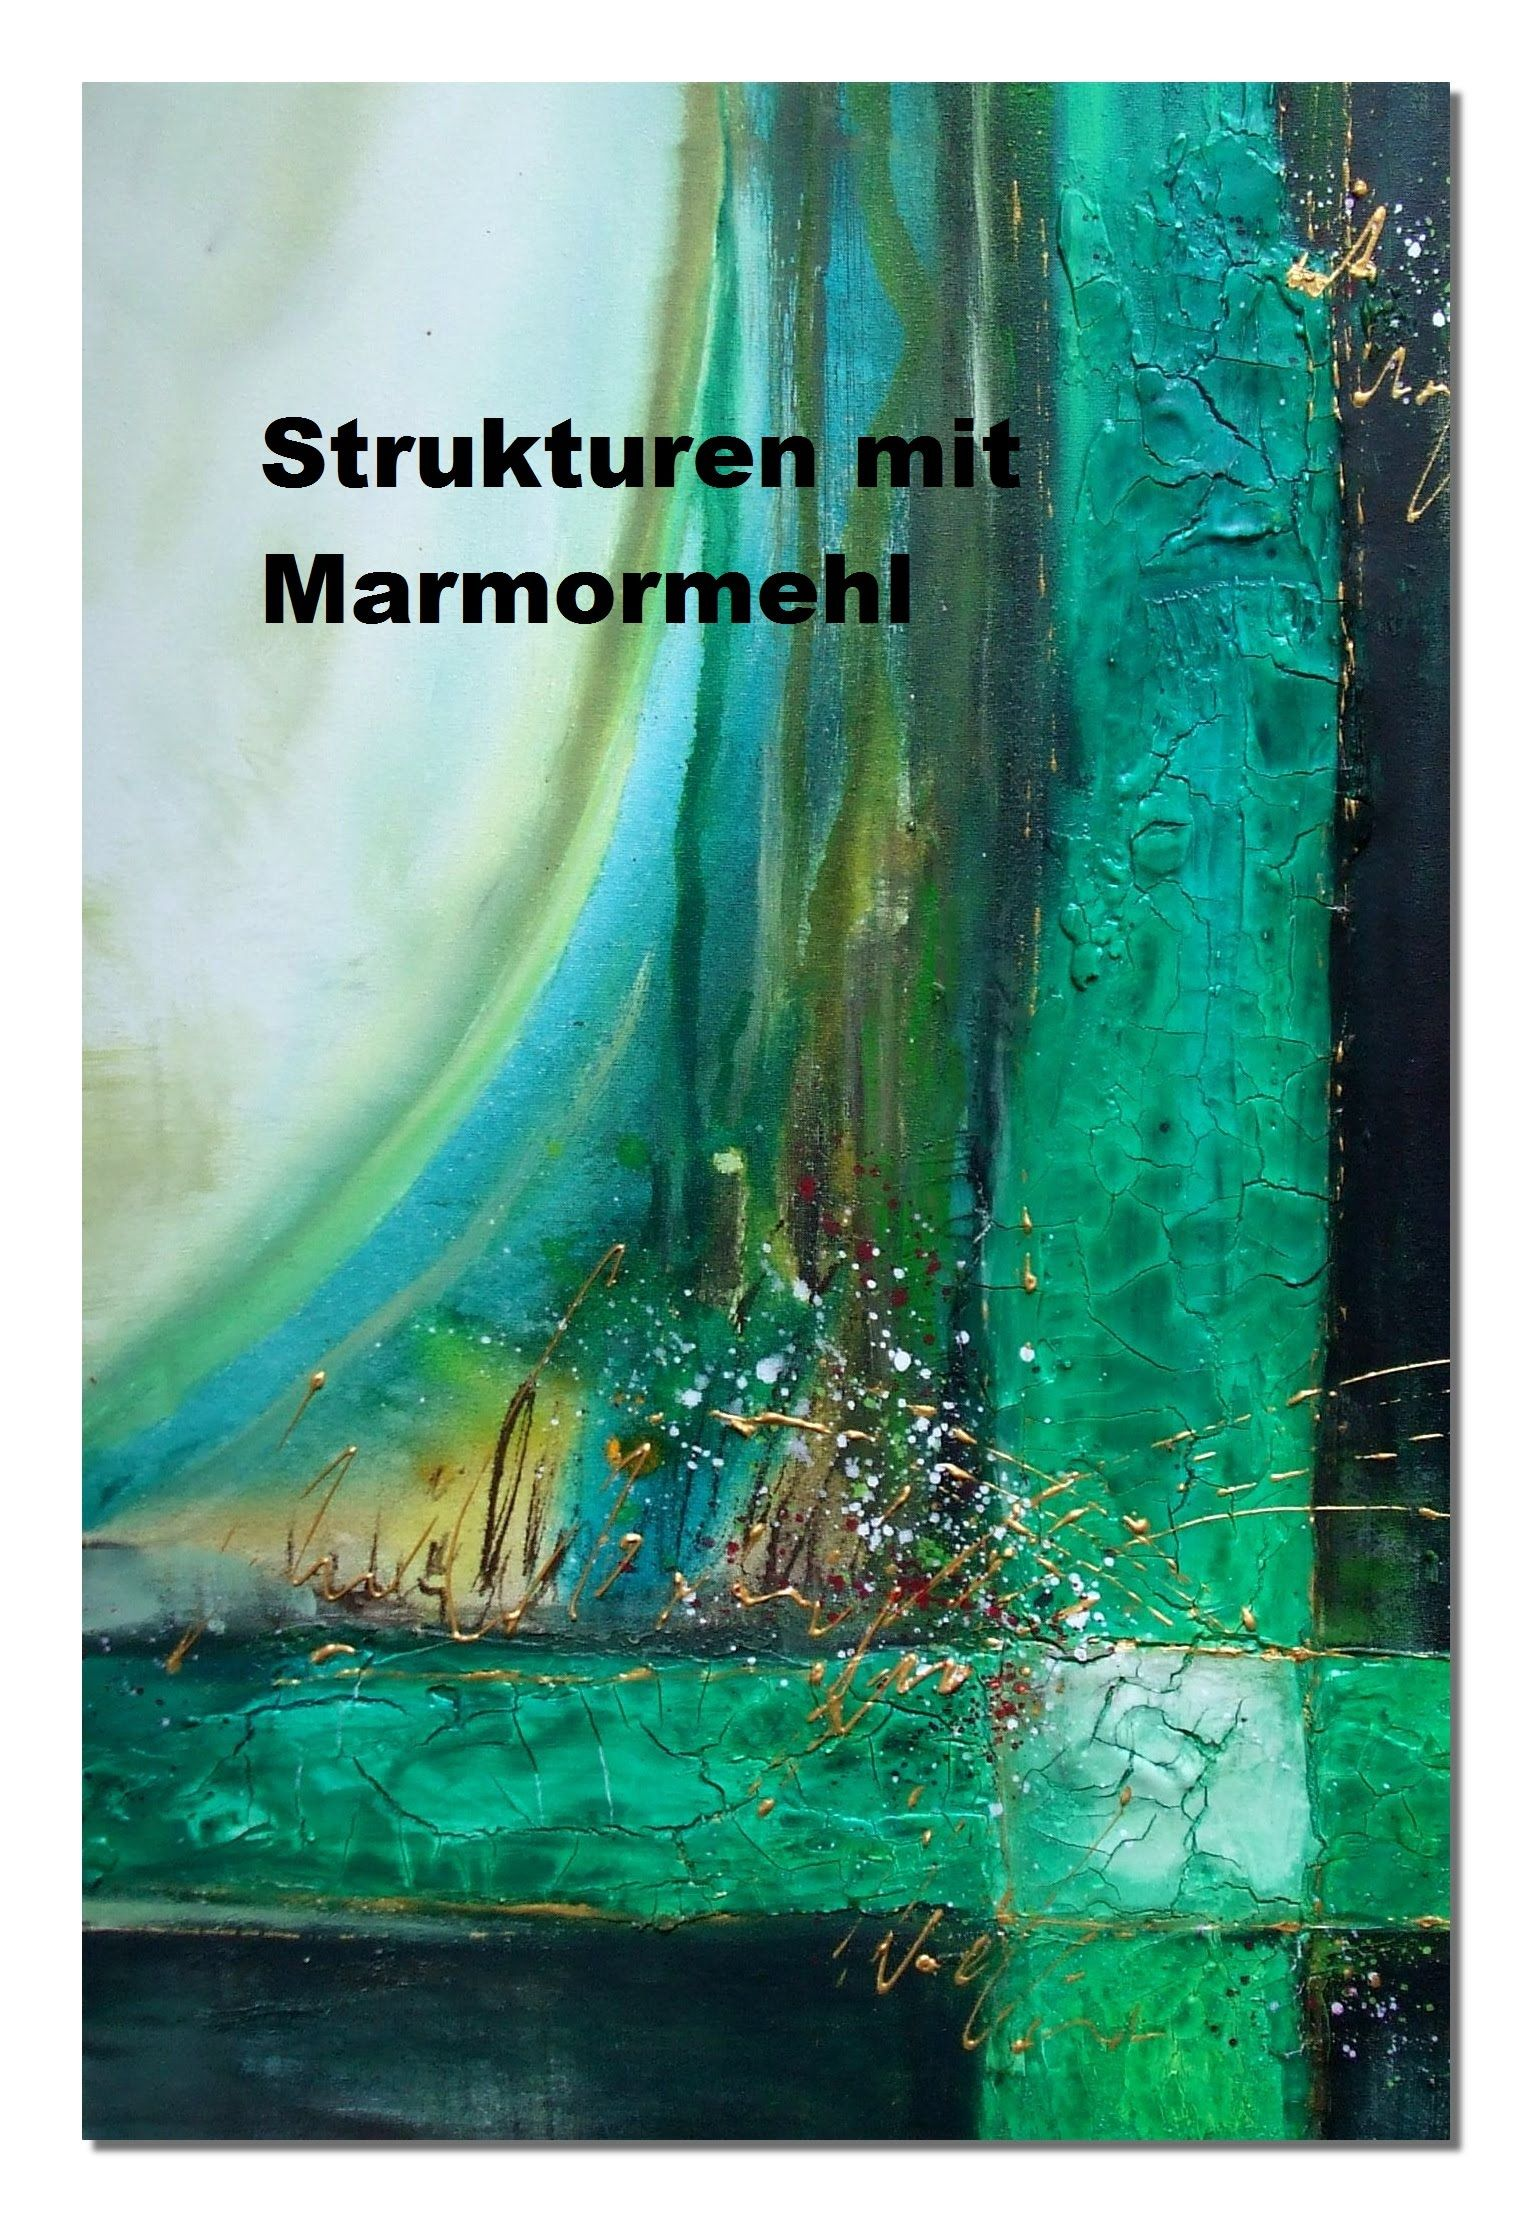 Abstrakte Kunst Selber Malen Abstract Painting Acrylmalerei Spachtelmasse Marmormehl